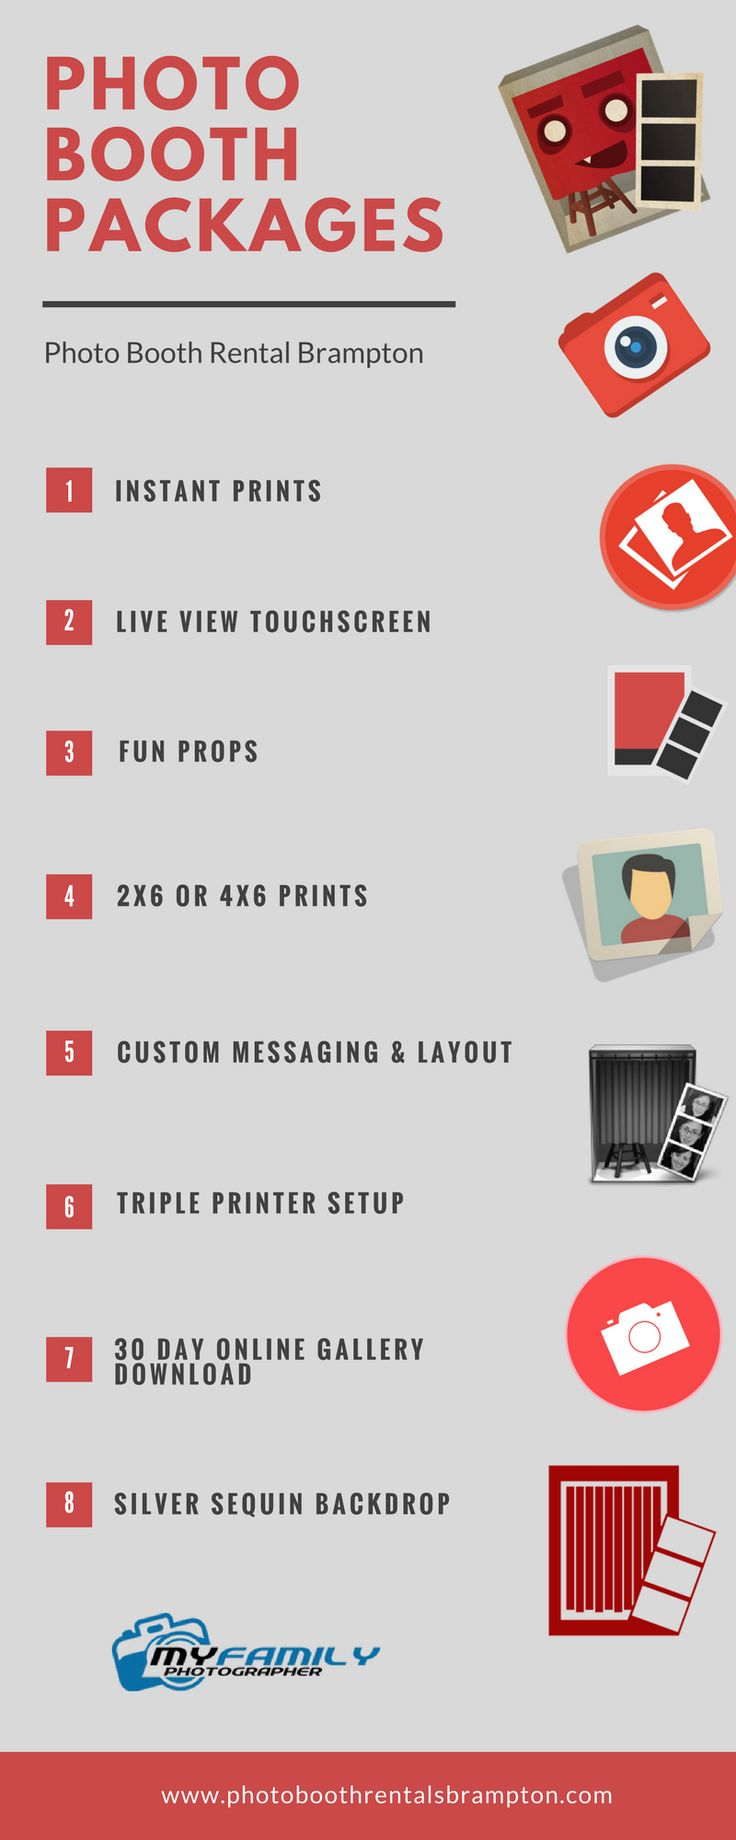 These photo booth rental packages are perfect if you like to give photo remembrances of your occasion. You can have it at reasonable prices and do perfect job maintaining your valuable moments.